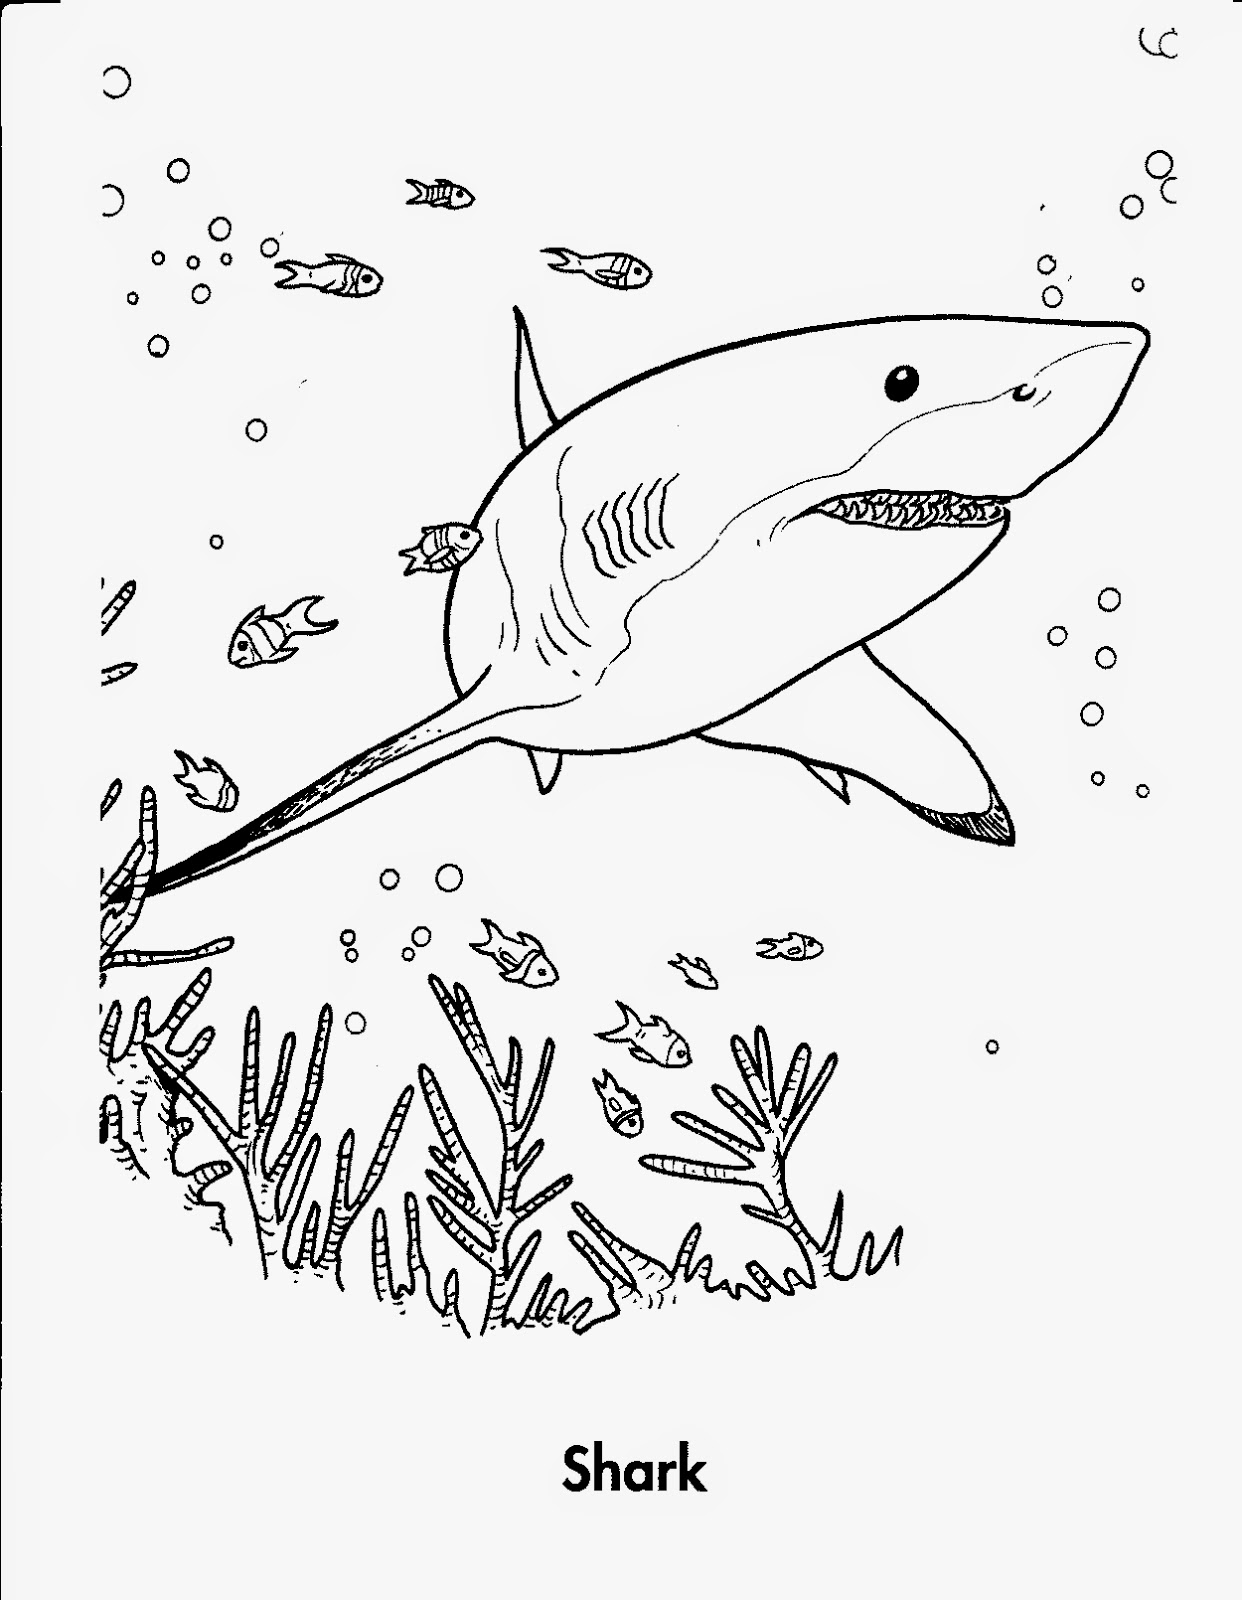 shark colouring picture sharks coloring pages download and print sharks coloring shark colouring picture